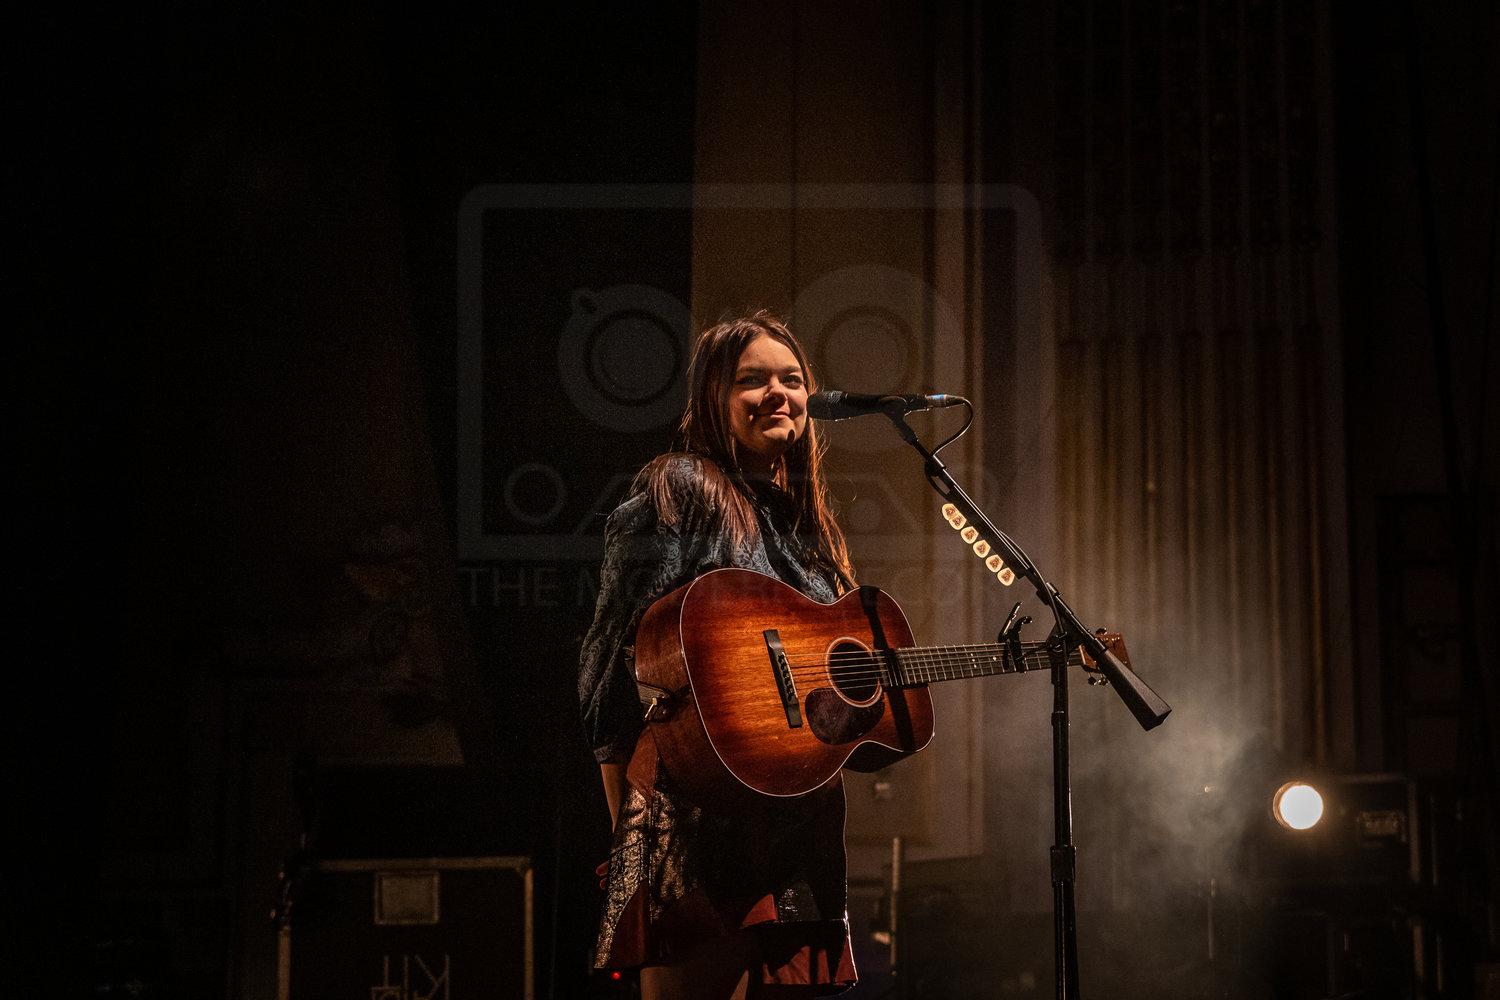 FIRST AID KIT PERFORMING AT EDINBURGH'S USHER HALL - 26.10.2018 PICTURE BY: KENDALL WILSON PHOTOGRAPHY